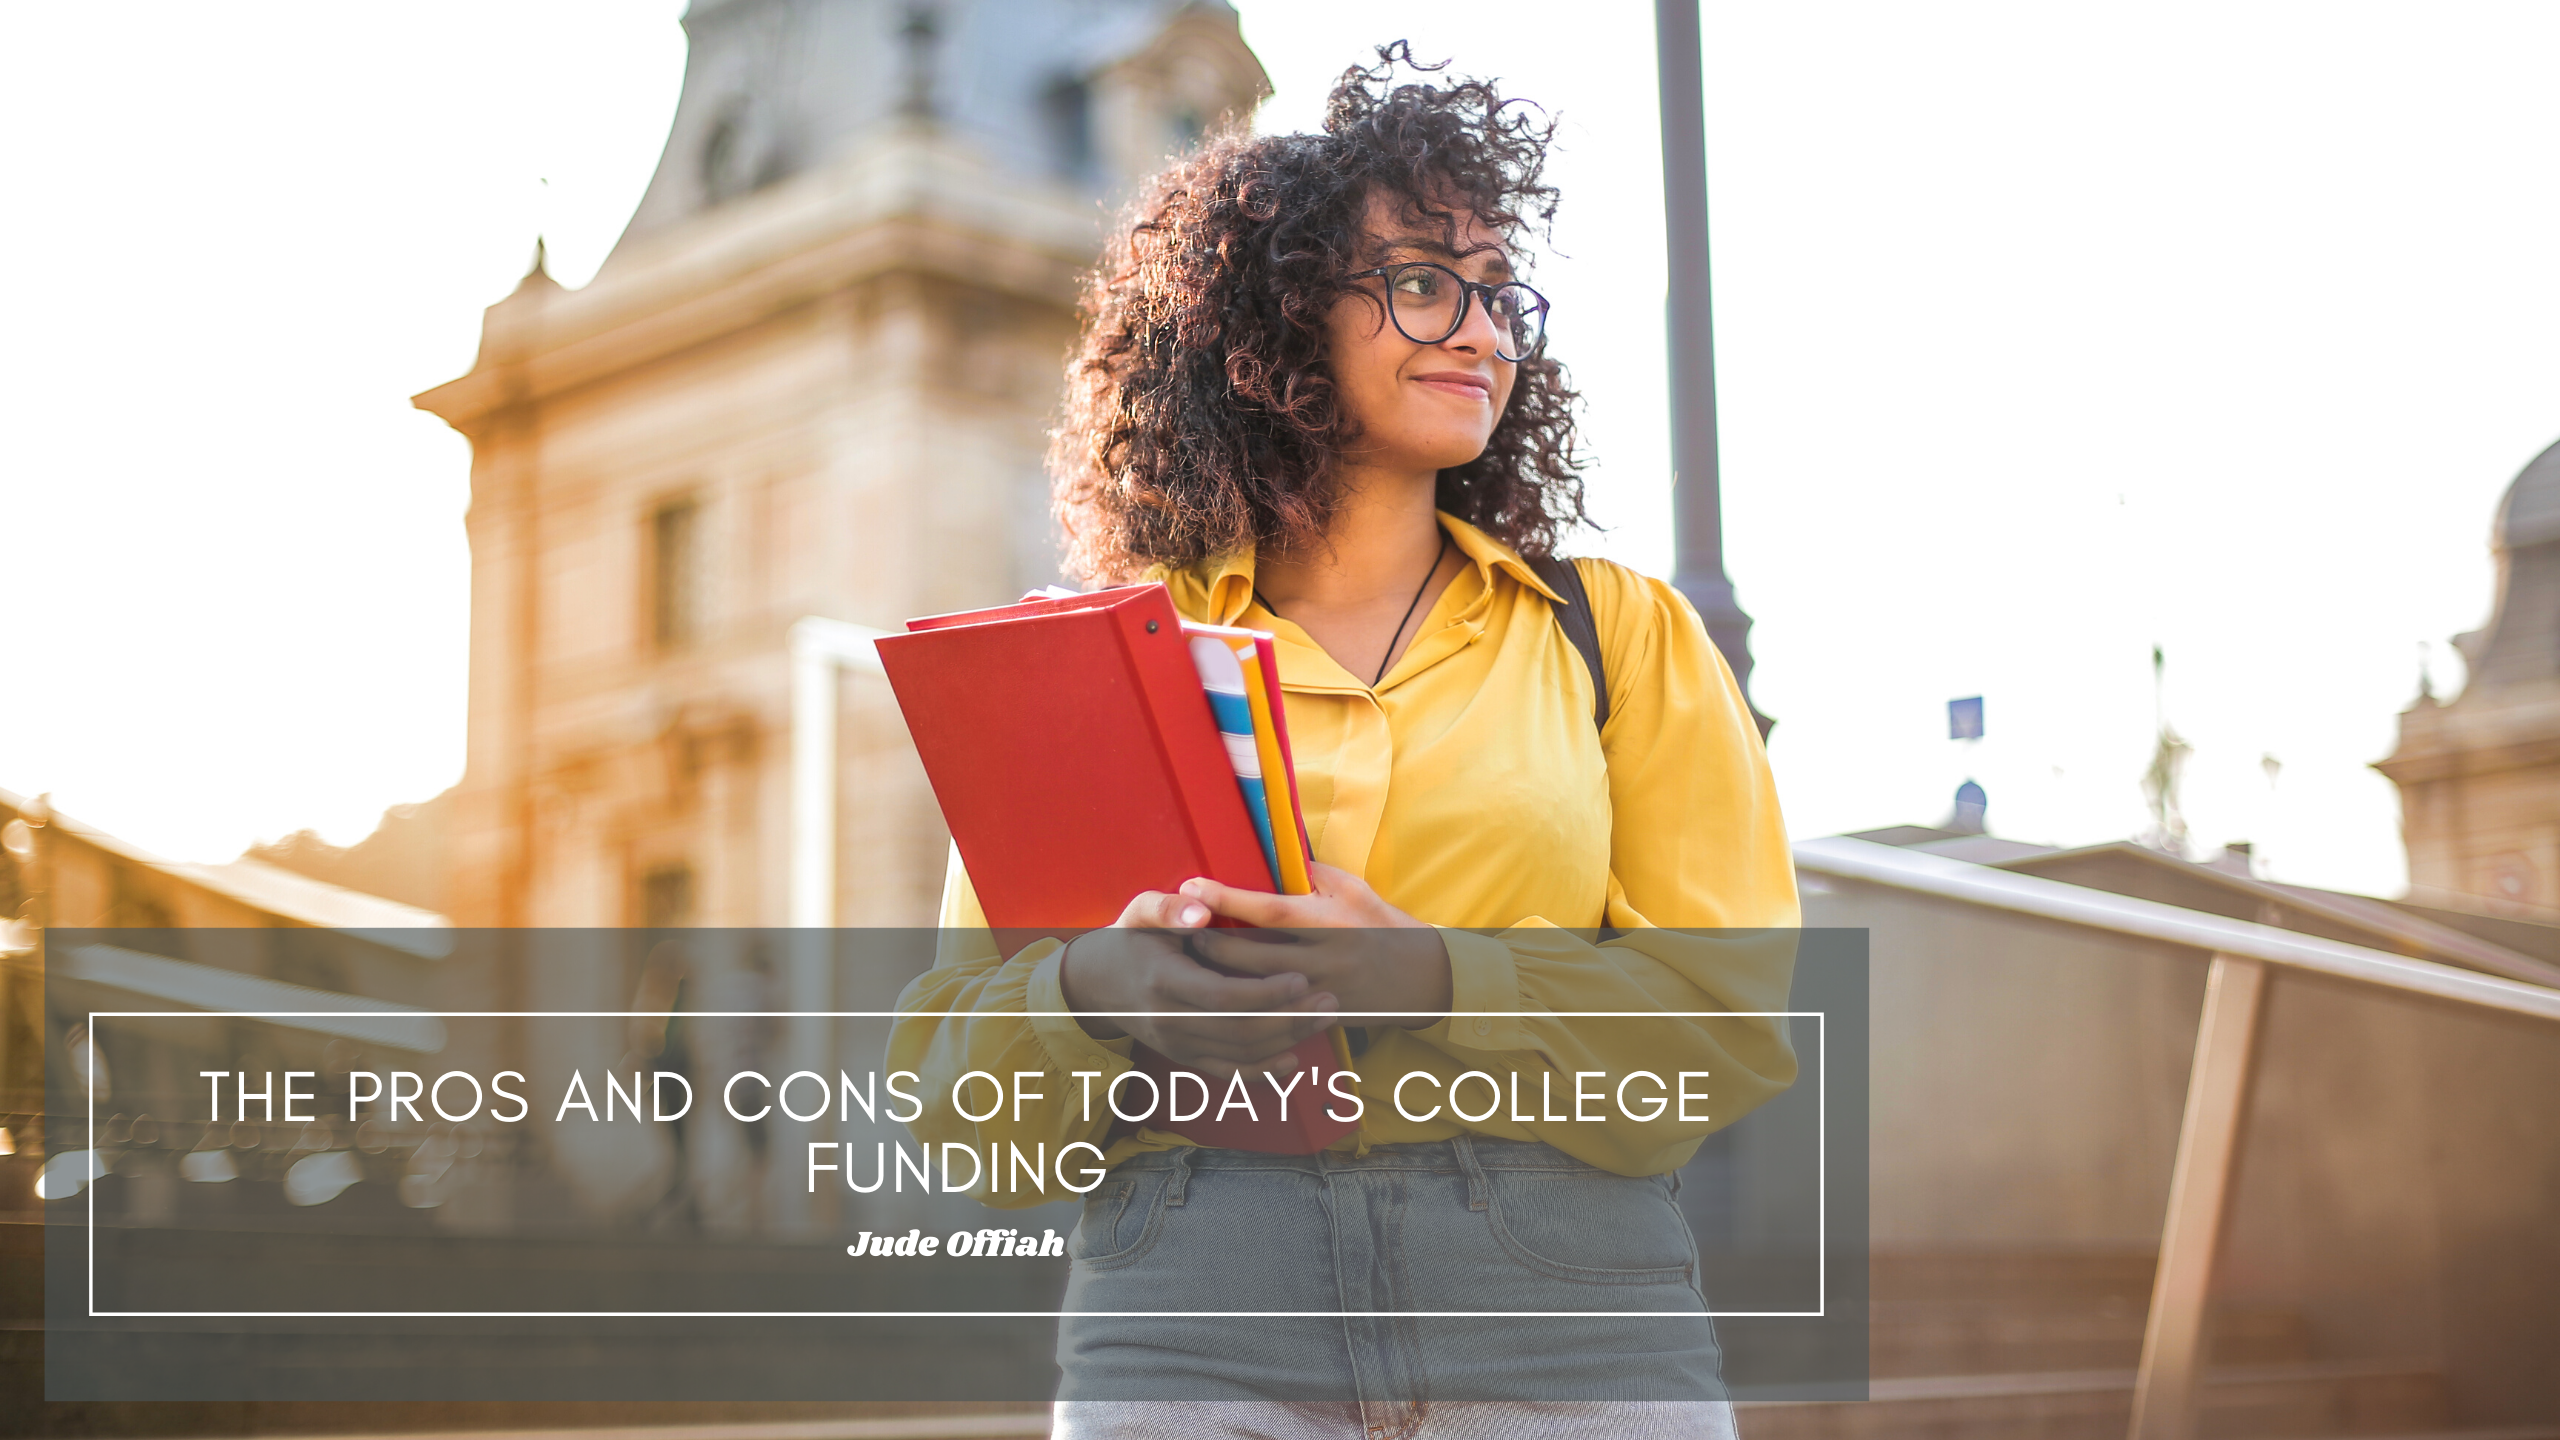 The Pros and Cons of Today's College Funding